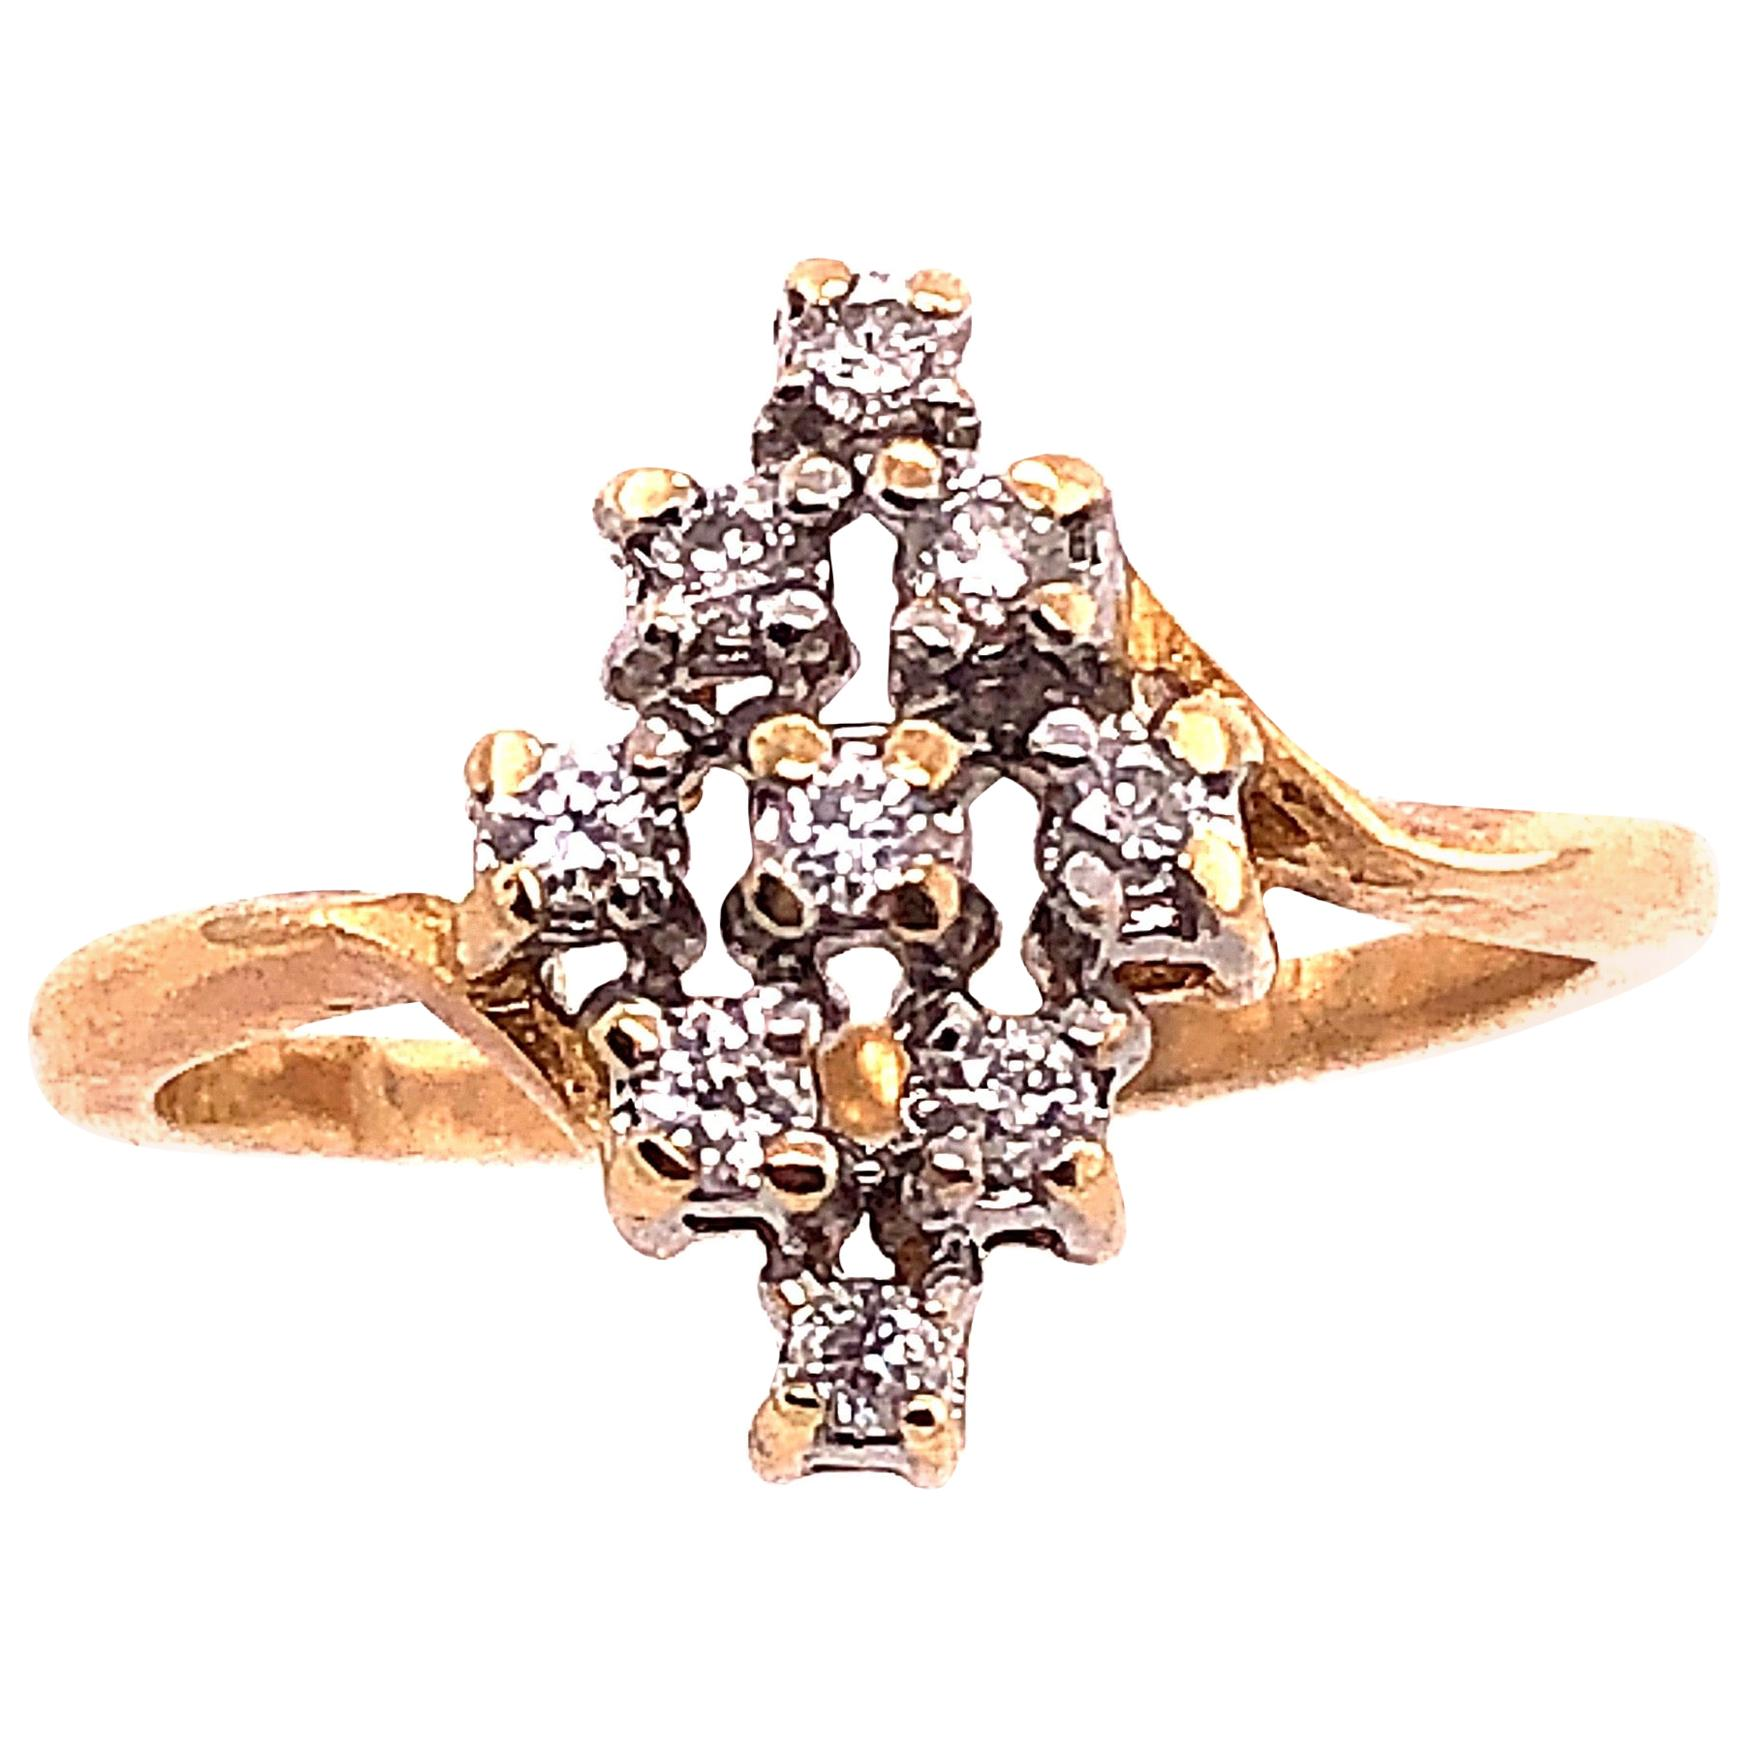 14 Karat Yellow and White Gold Contemporary Ring with Diamonds